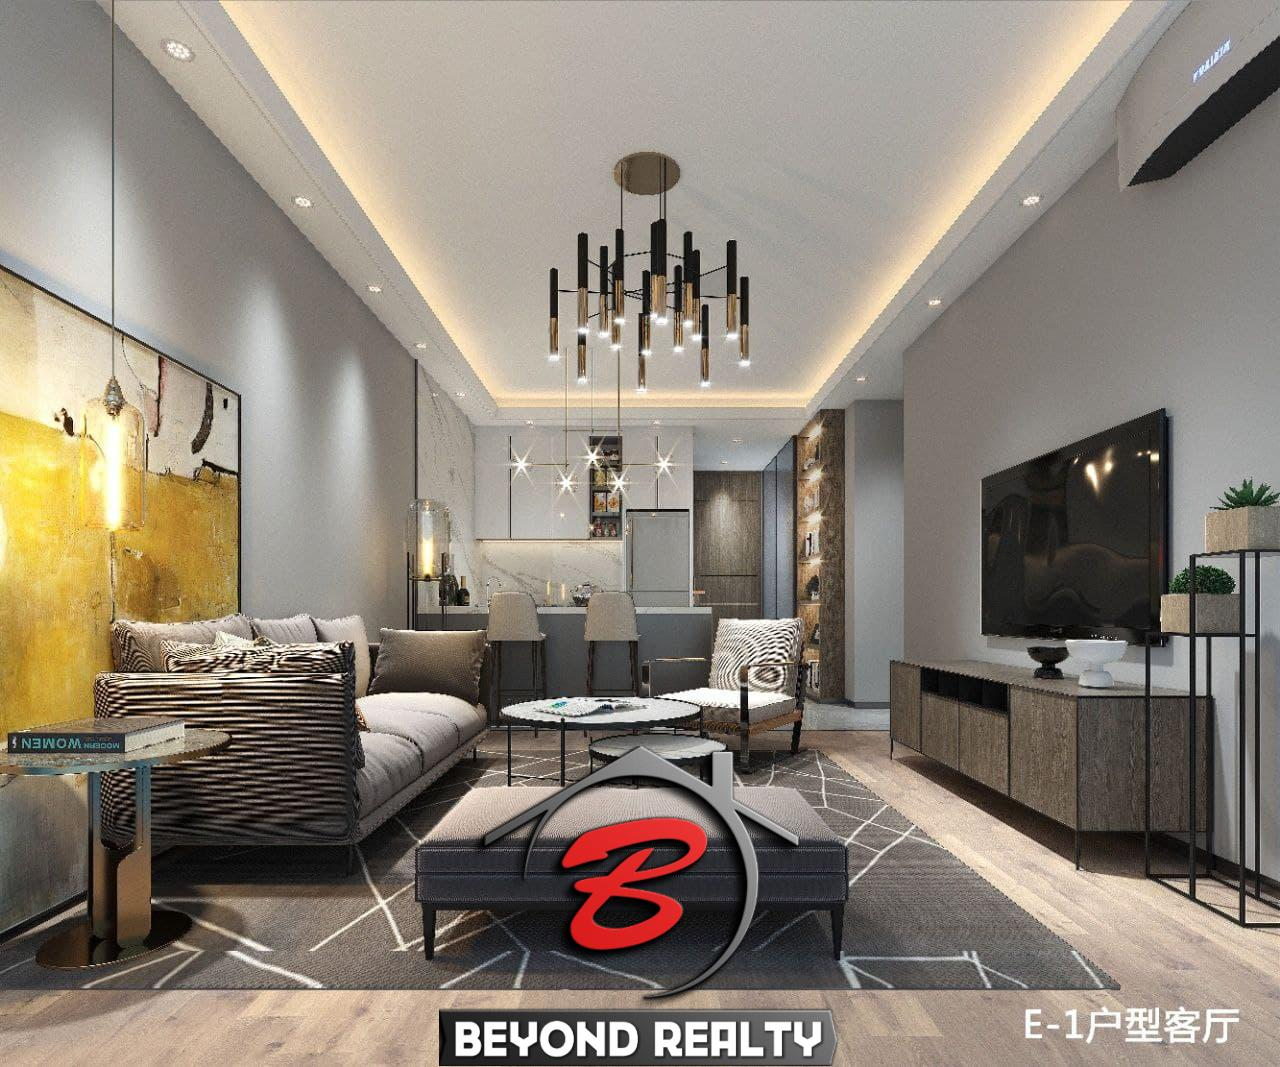 the living room of the 1br condo for sale at Treasure Bay Sihanoukville